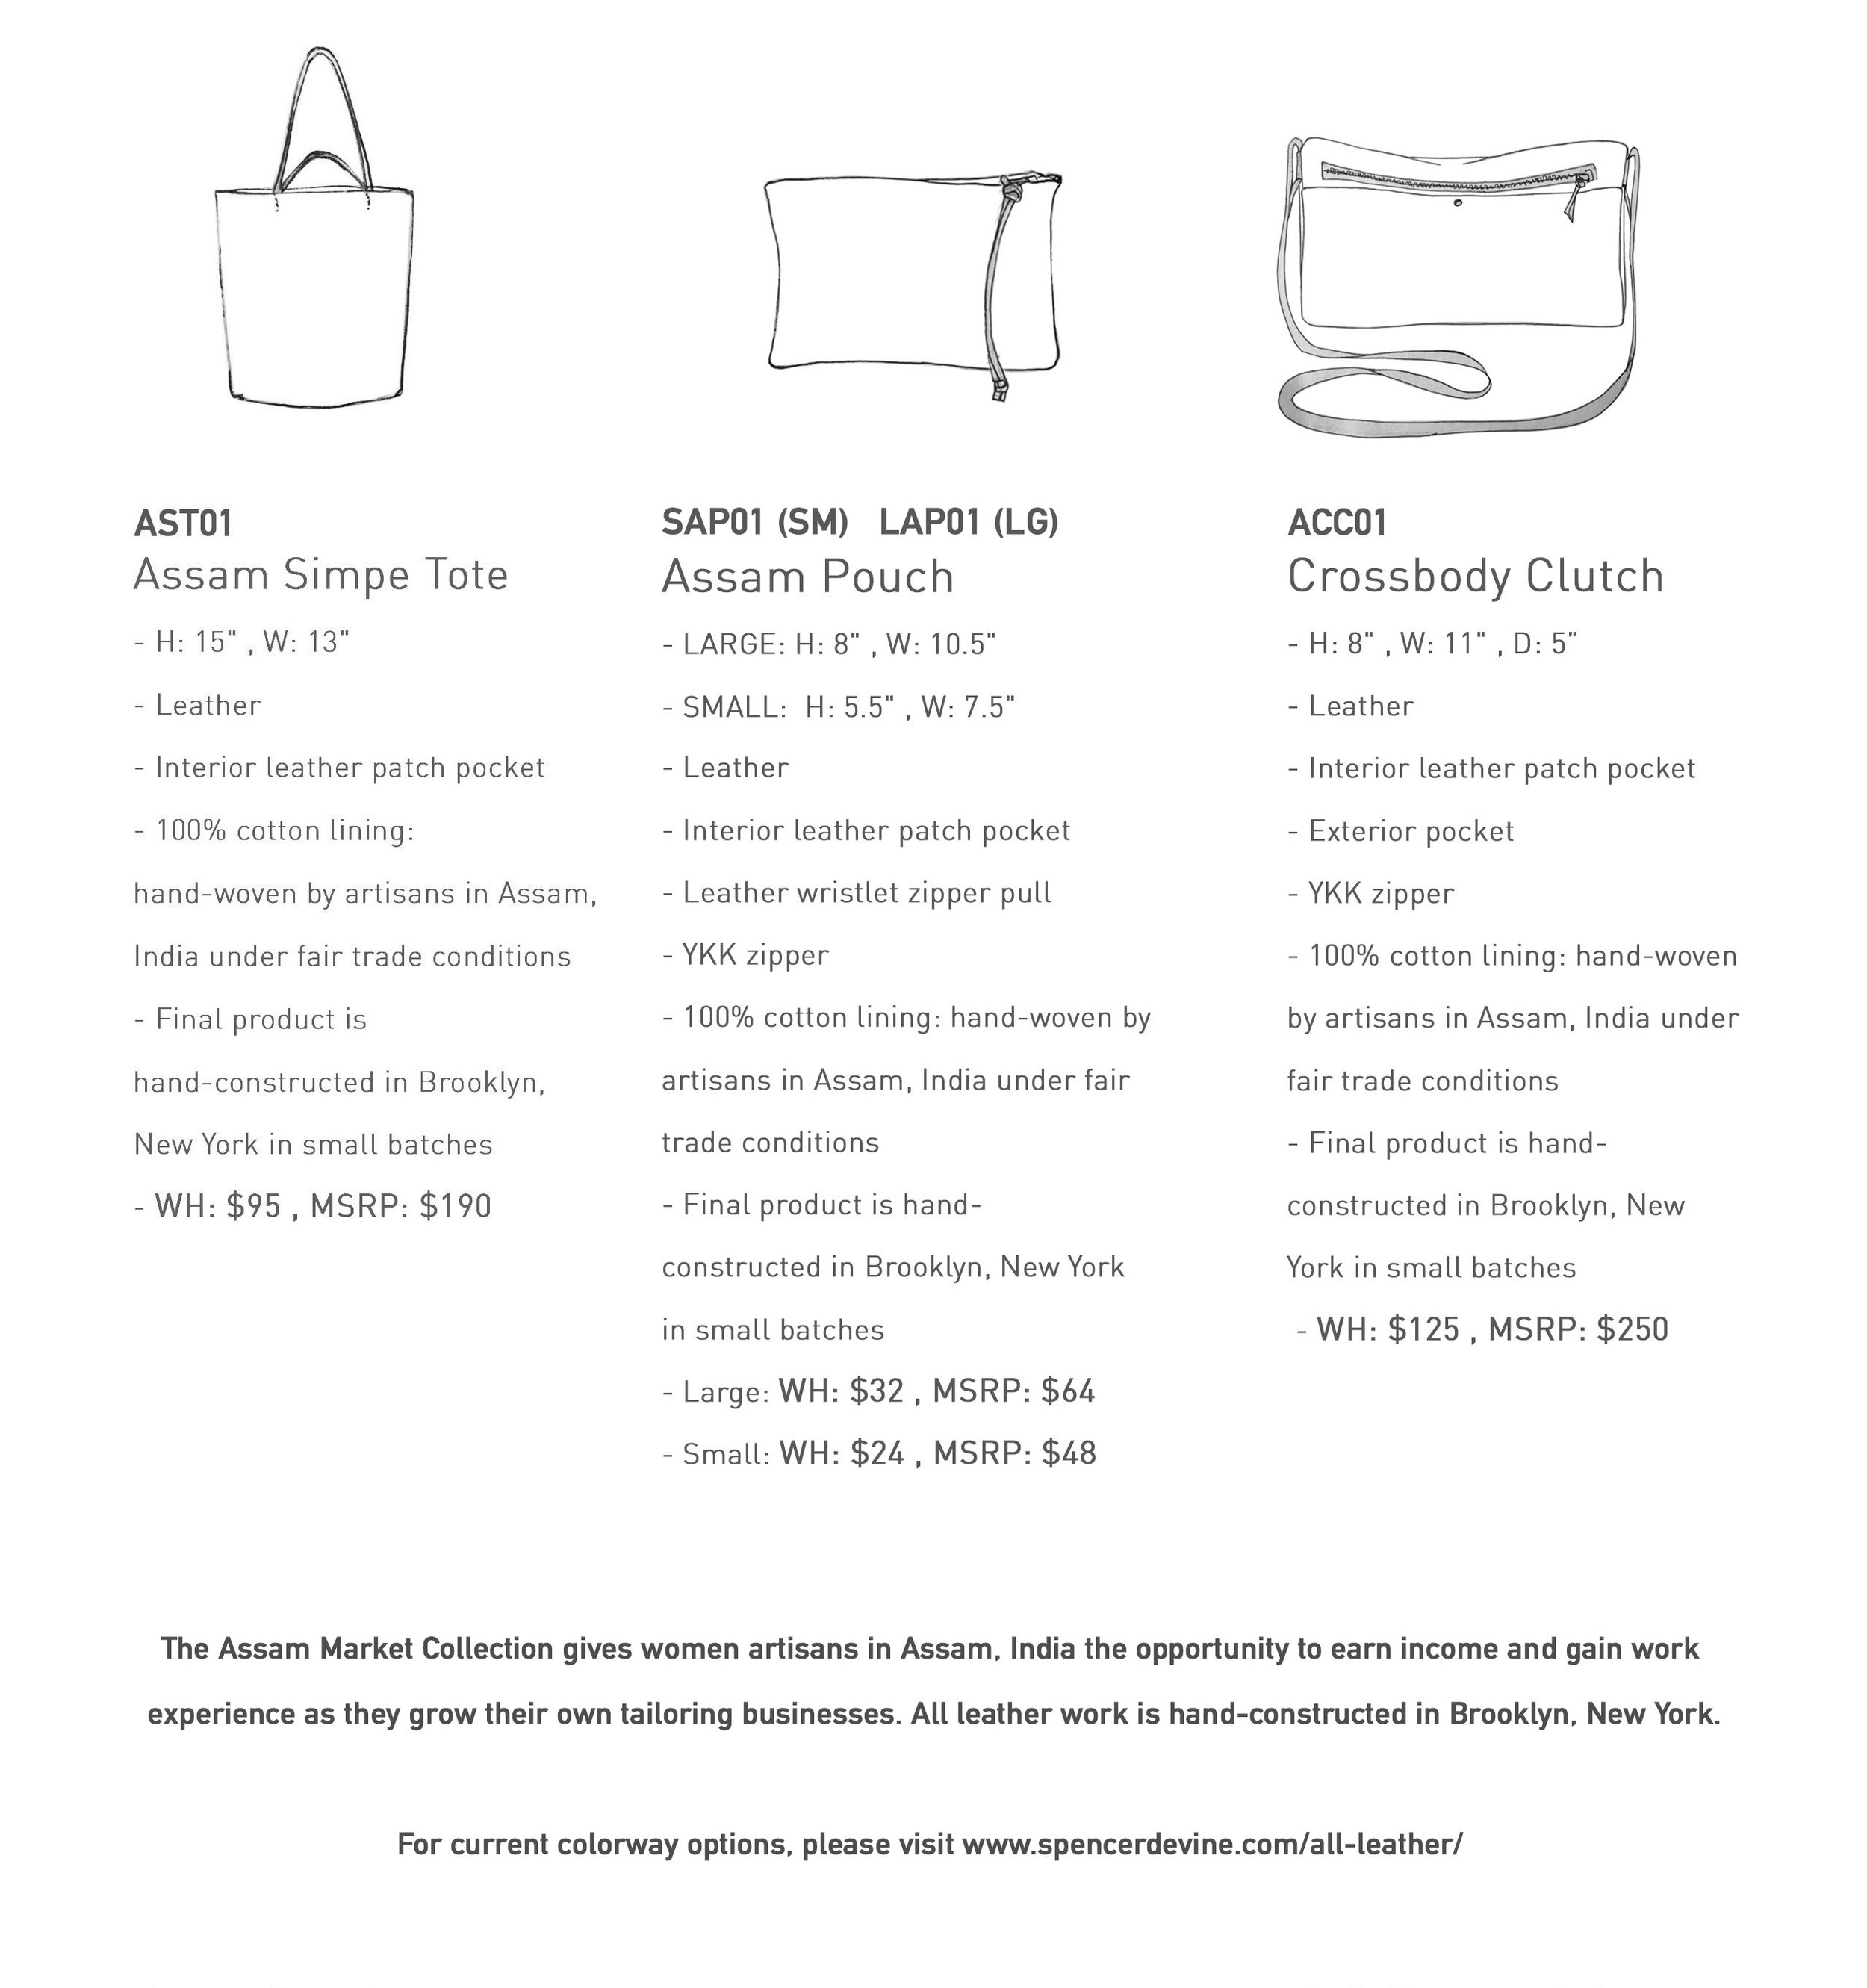 Assam Leather 1 Linesheet FW 19.jpg